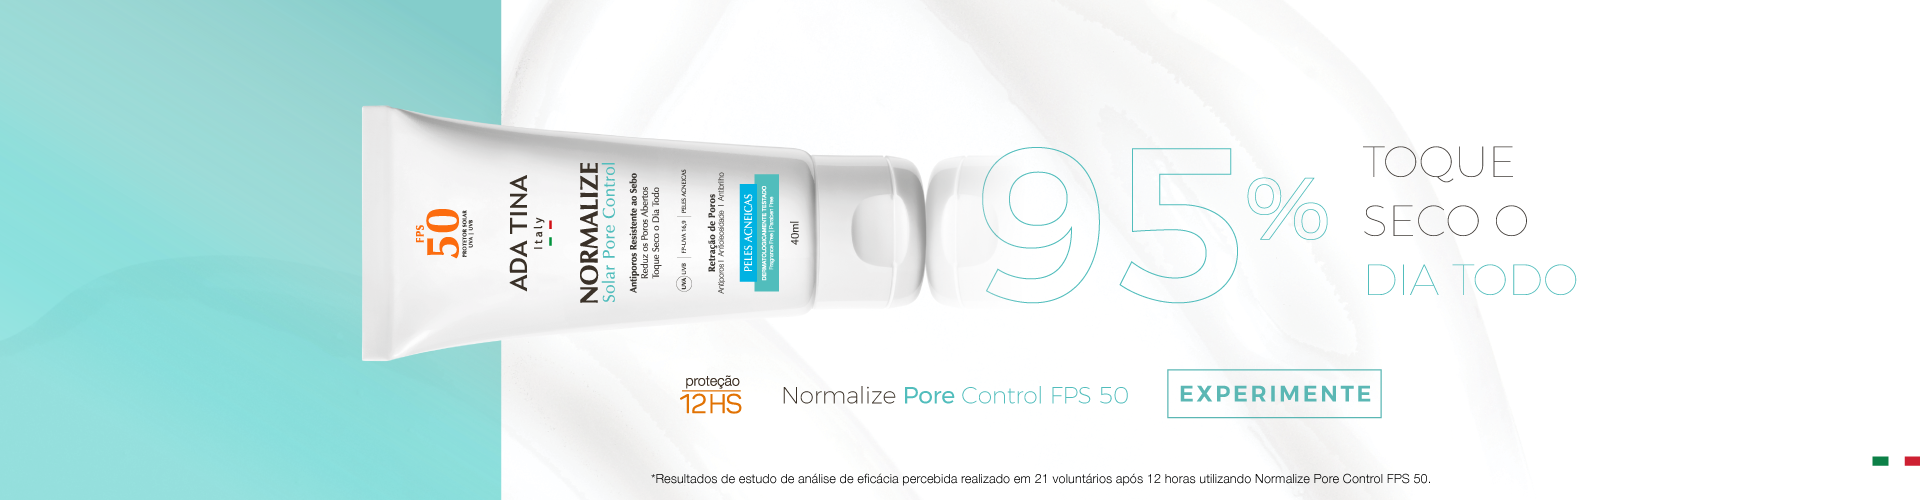 FULL NORMALIZE PORE CONTROL FPS 50